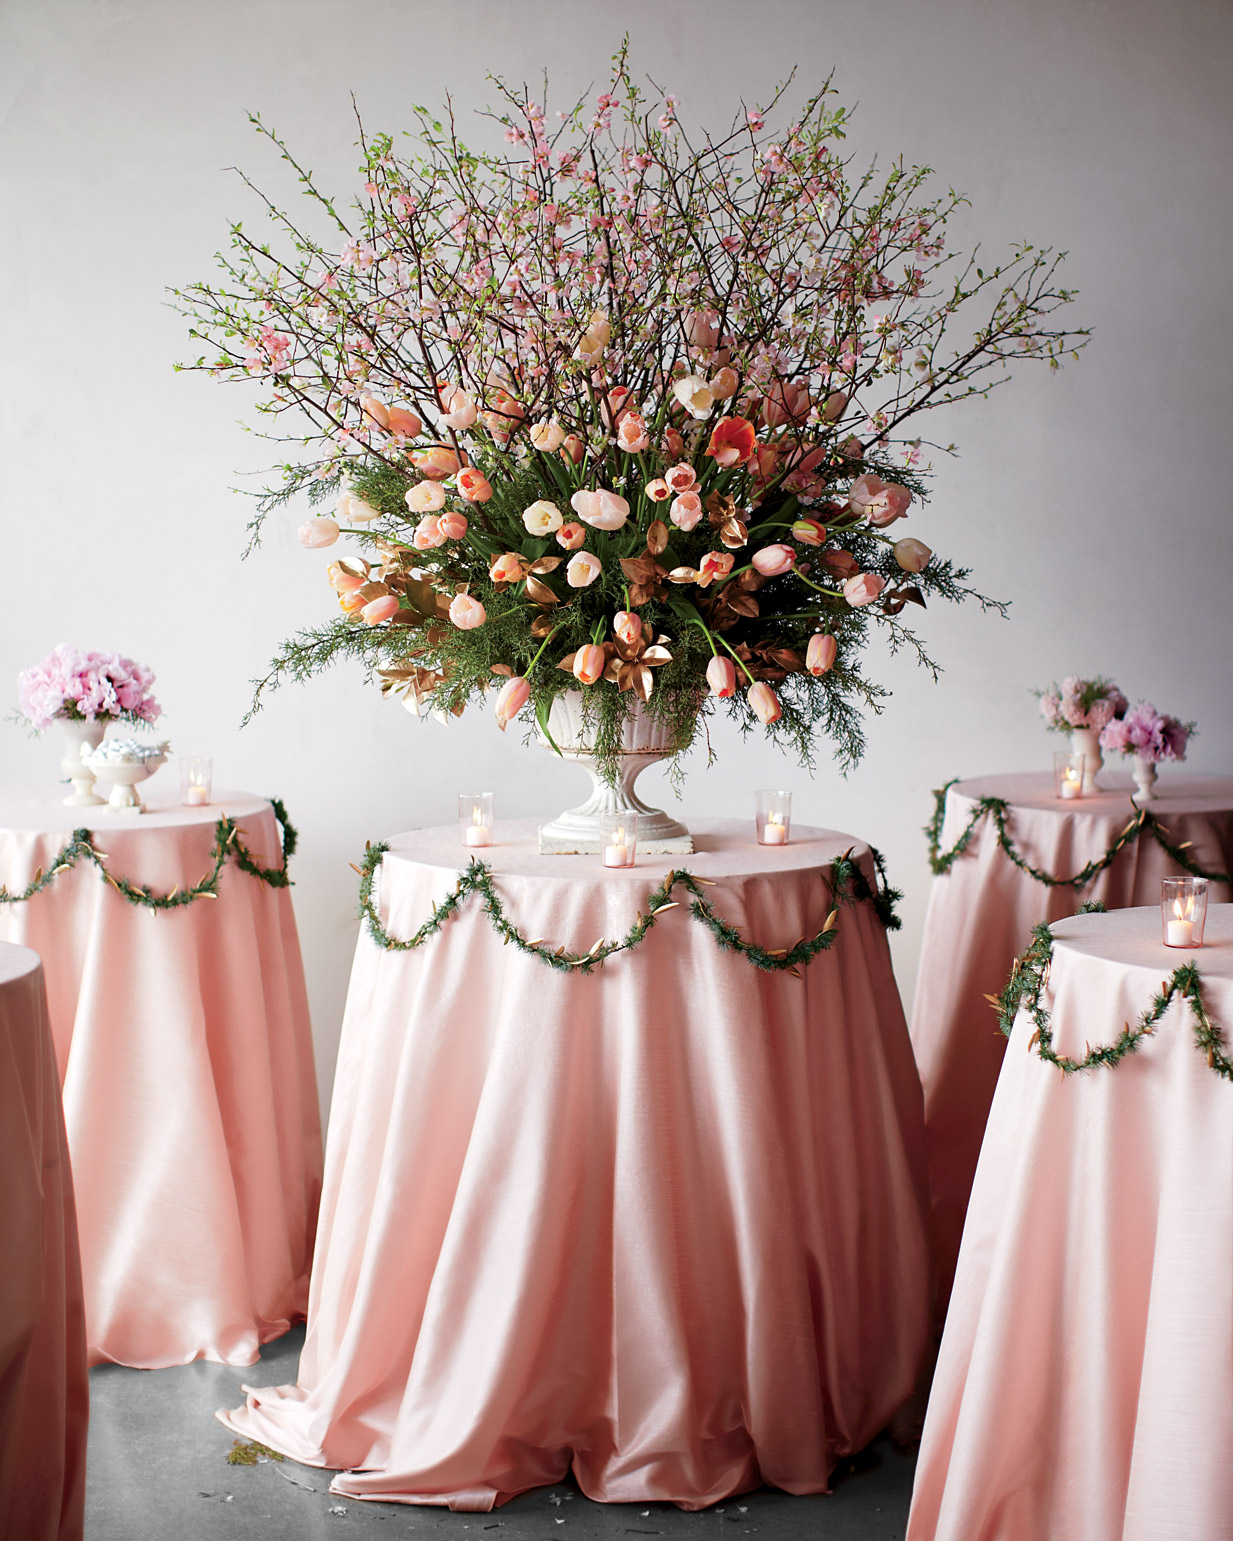 Wedding Website Url Ideas: 13 Genius Winter Wedding Flower Ideas From Pro Florists